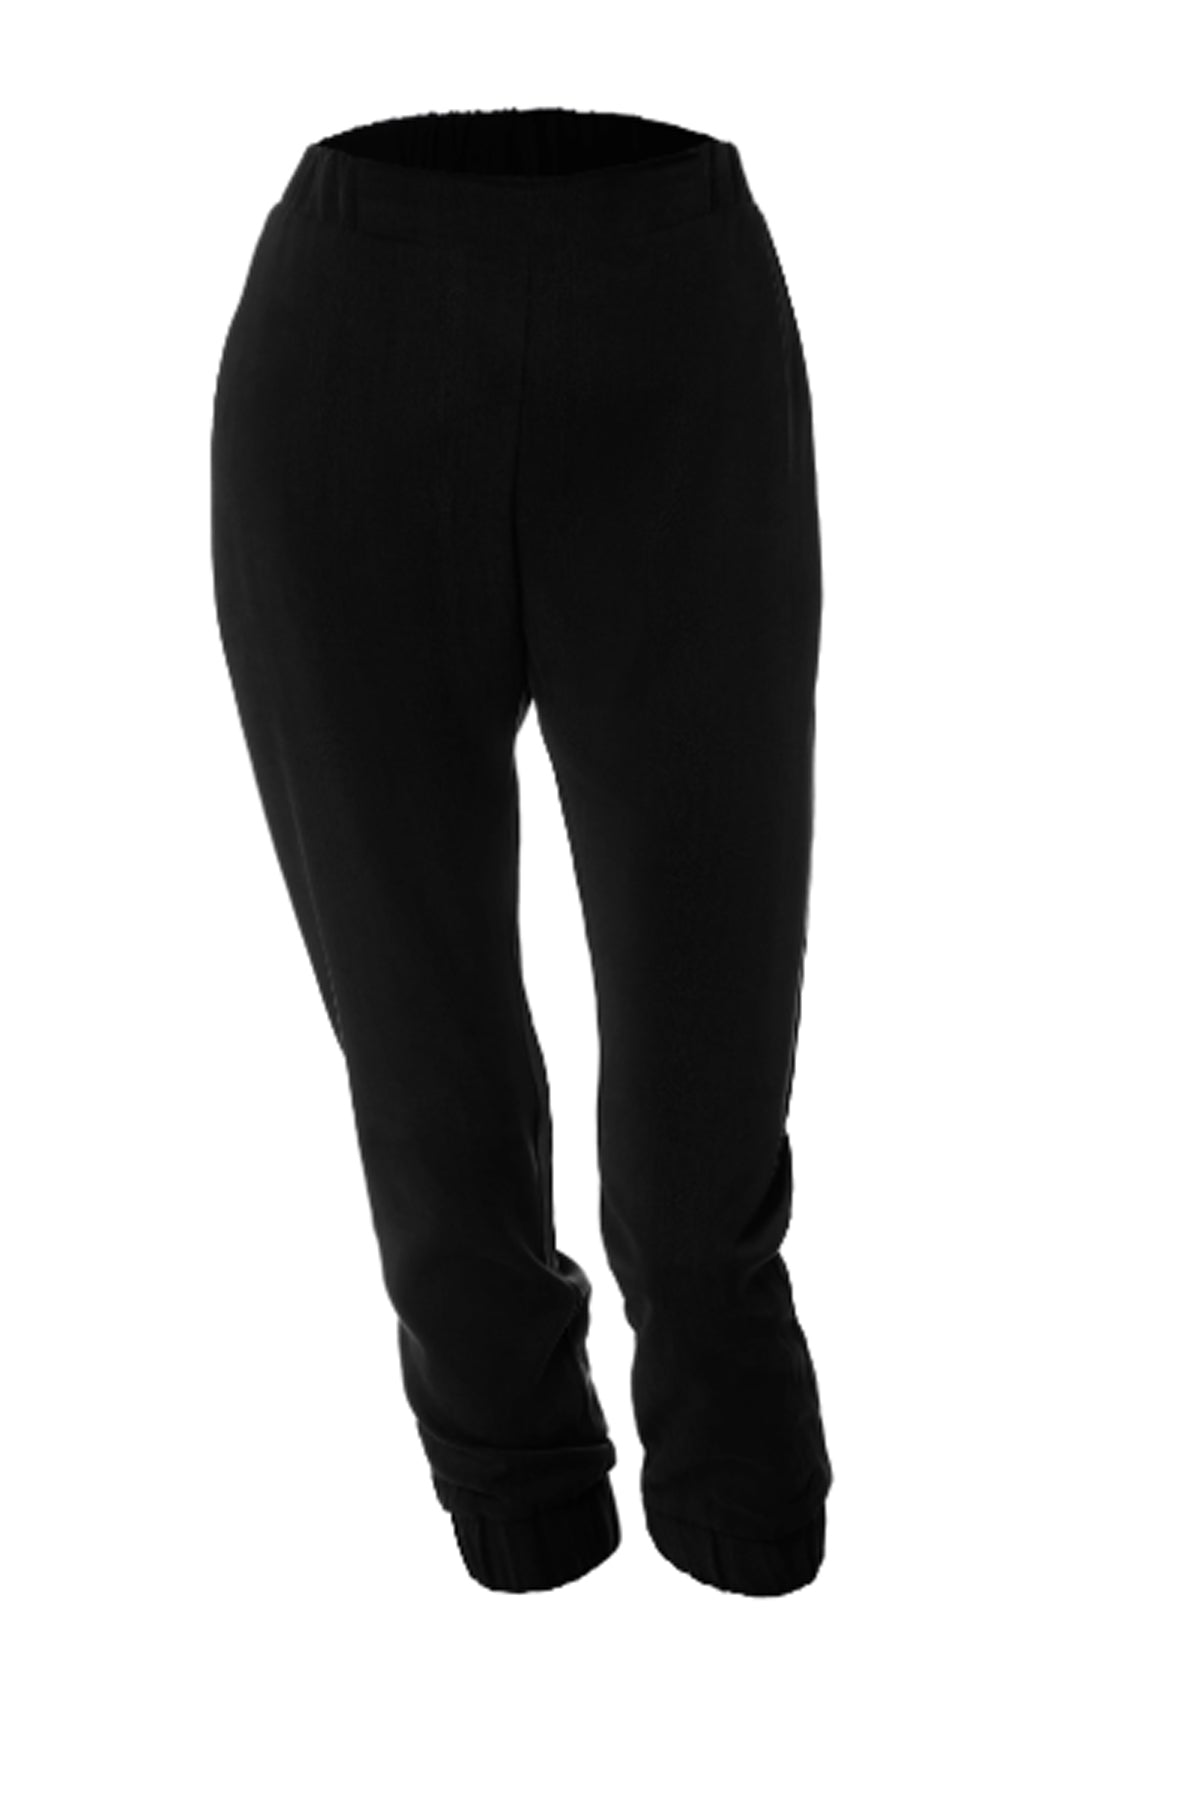 Yanez Pants by Melow par Melissa Bolduc, black, capri pants, elastic at ankles, elastic waist, sizes 4-14, made in Quebec